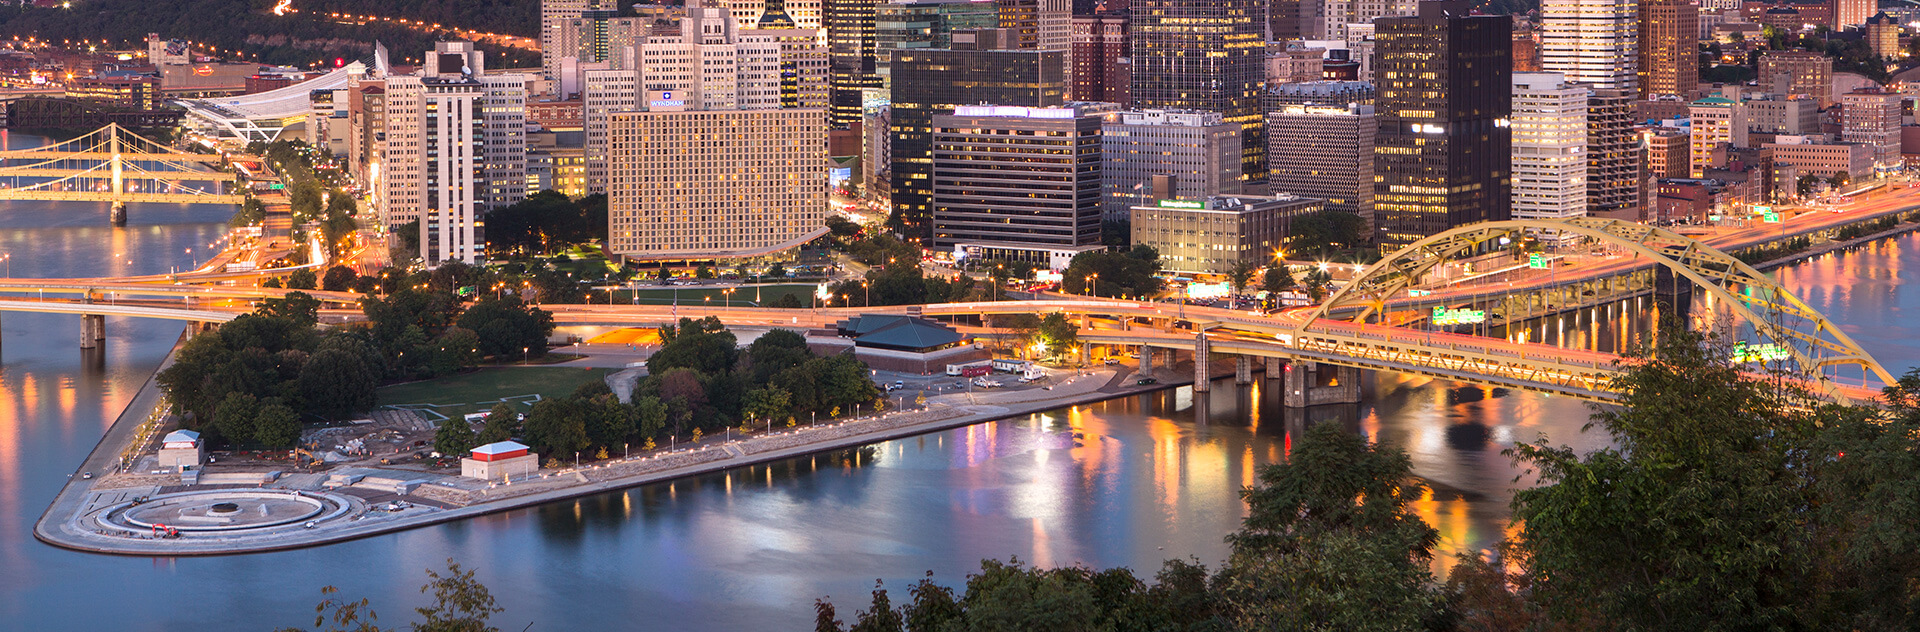 The industrialist hotel pittsburgh pennsylvania, Contact Us